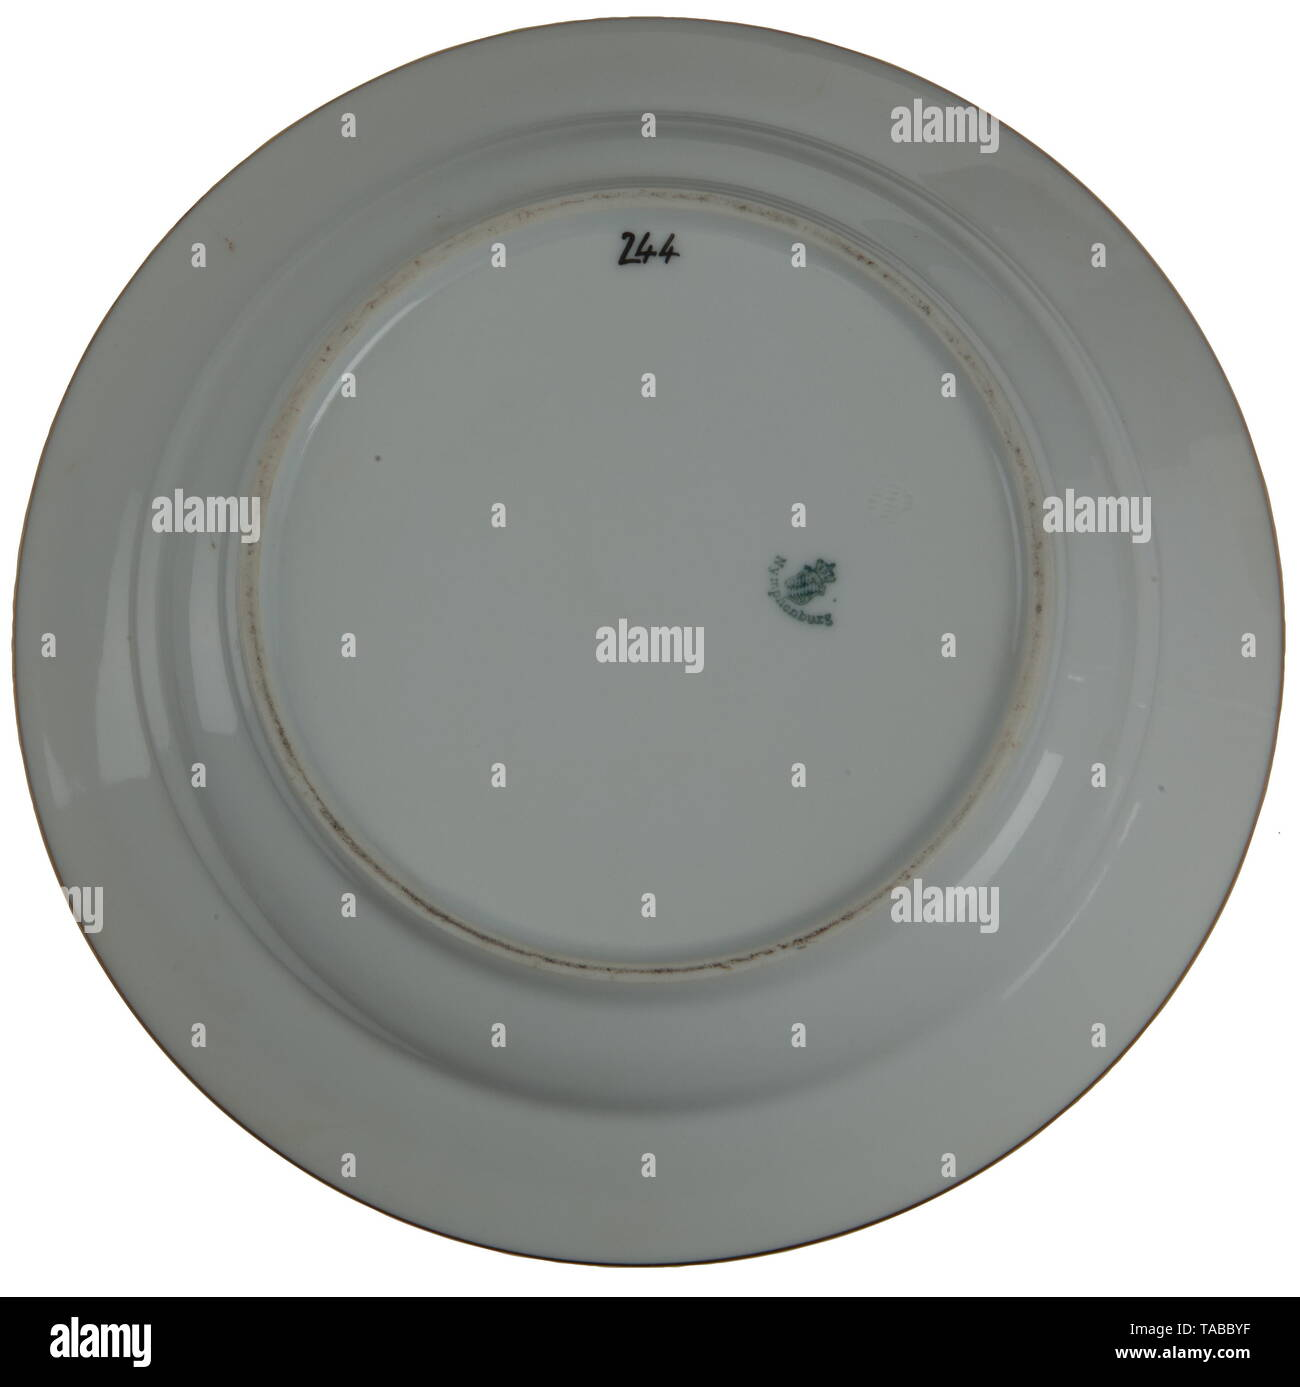 A pair of Deutsche Reichsbahn china plates from Göring's dining car Top edge of each plate has the German national eagle flanked by the letters 'DR' (Deutsche Reichsbahn, tr. German Railway Service). The underside of the plates are marked for the Nymphenburg Porcelain Manufactory, Munich. In addition to this logo, the number '244' appears in black numerals, representing the last three digits of one of Göring's dining cars, that is # 10244. These plates were taken from the dining car of Reichsmarschall Hermann Göring's Sonderzug (special train) at Berchtesgaden in May 1945, , Editorial-Use-Only - Stock Image